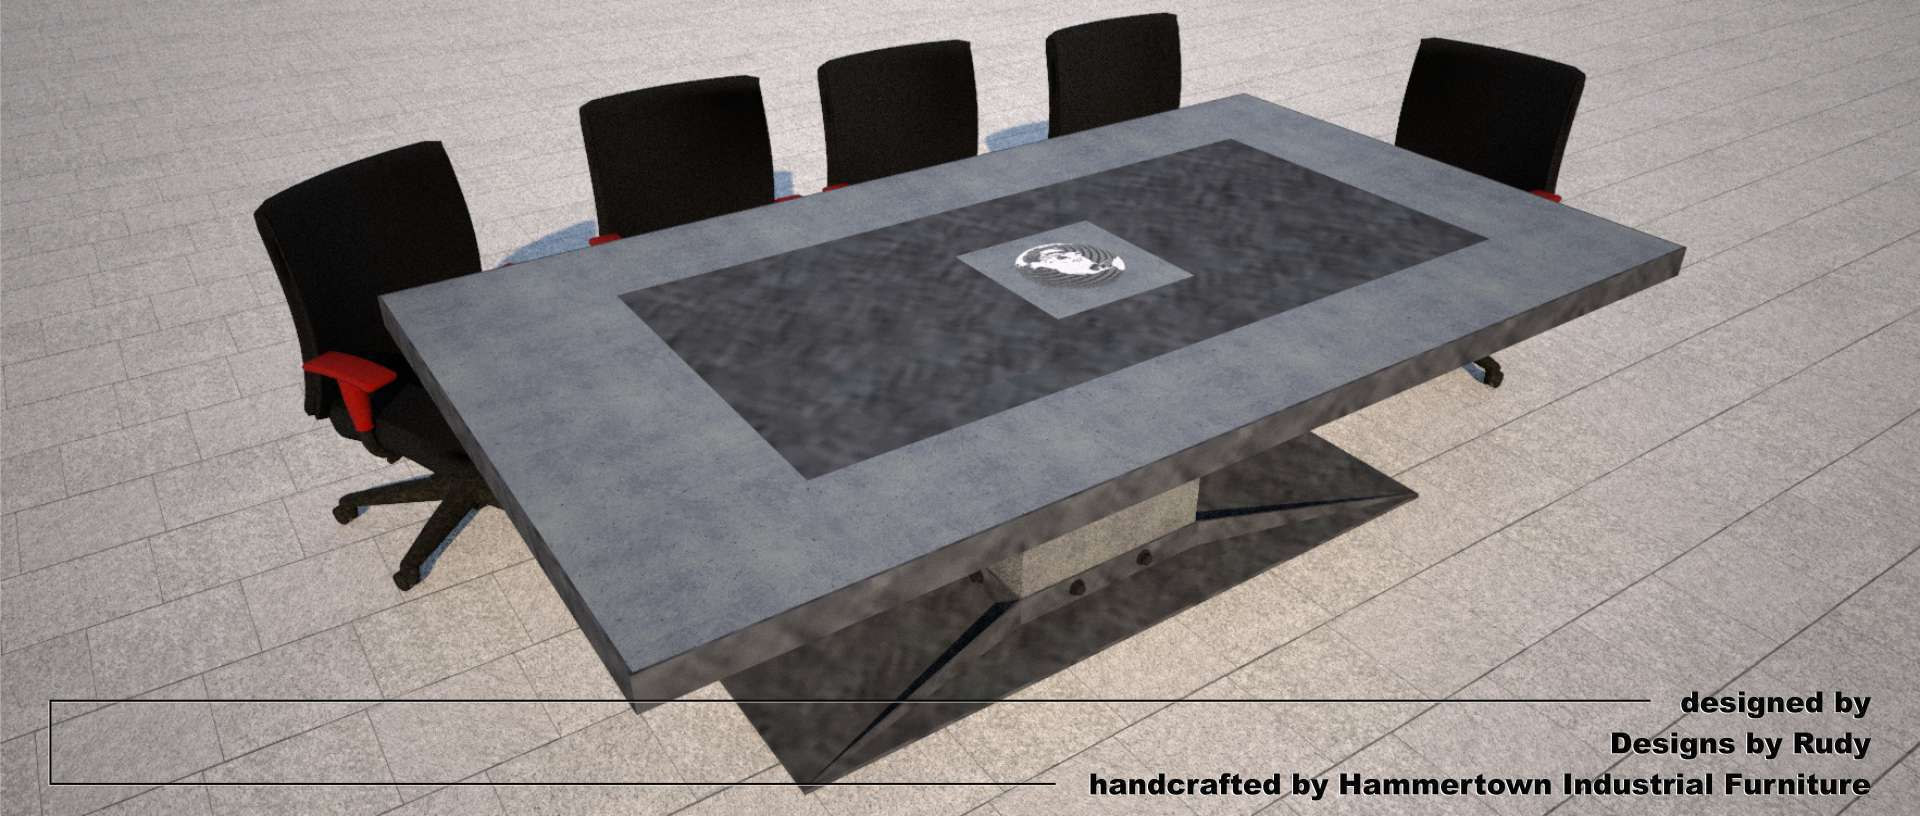 Concrete boardroom table for NAC with steel frame and base designed by Designs by Rudy